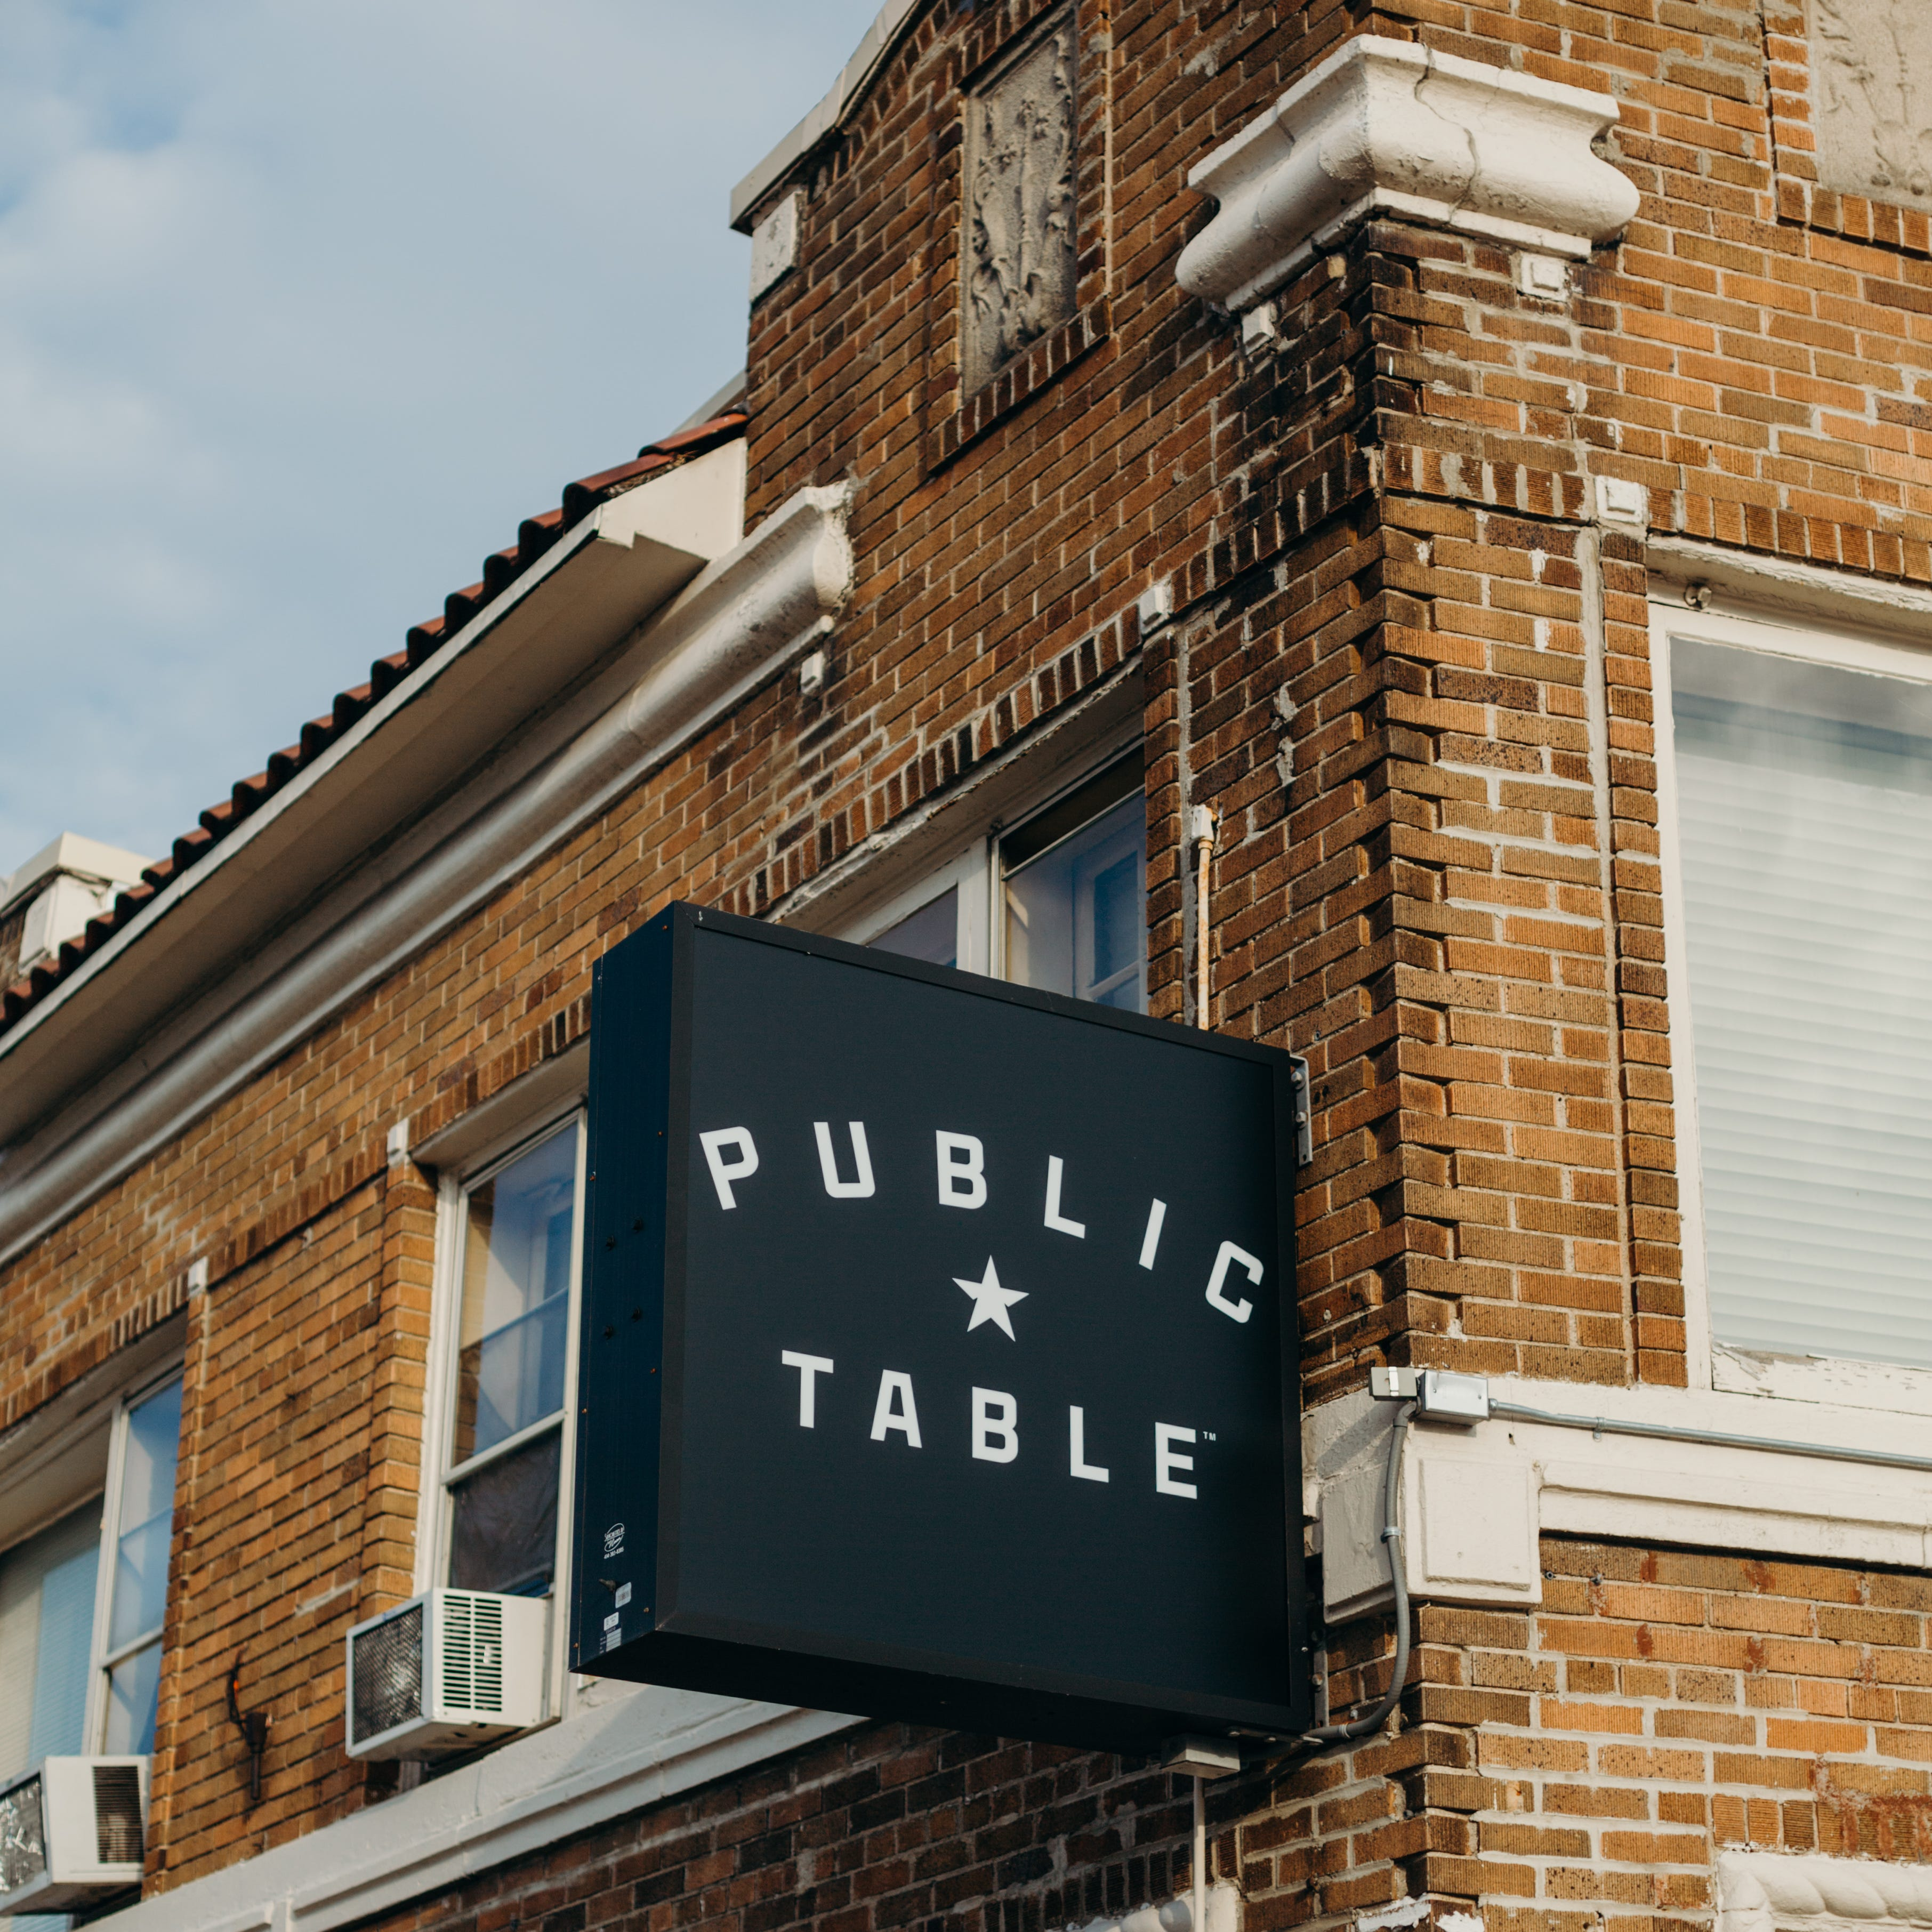 Public Table restaurant and bar opens Aug. 23 in West Allis